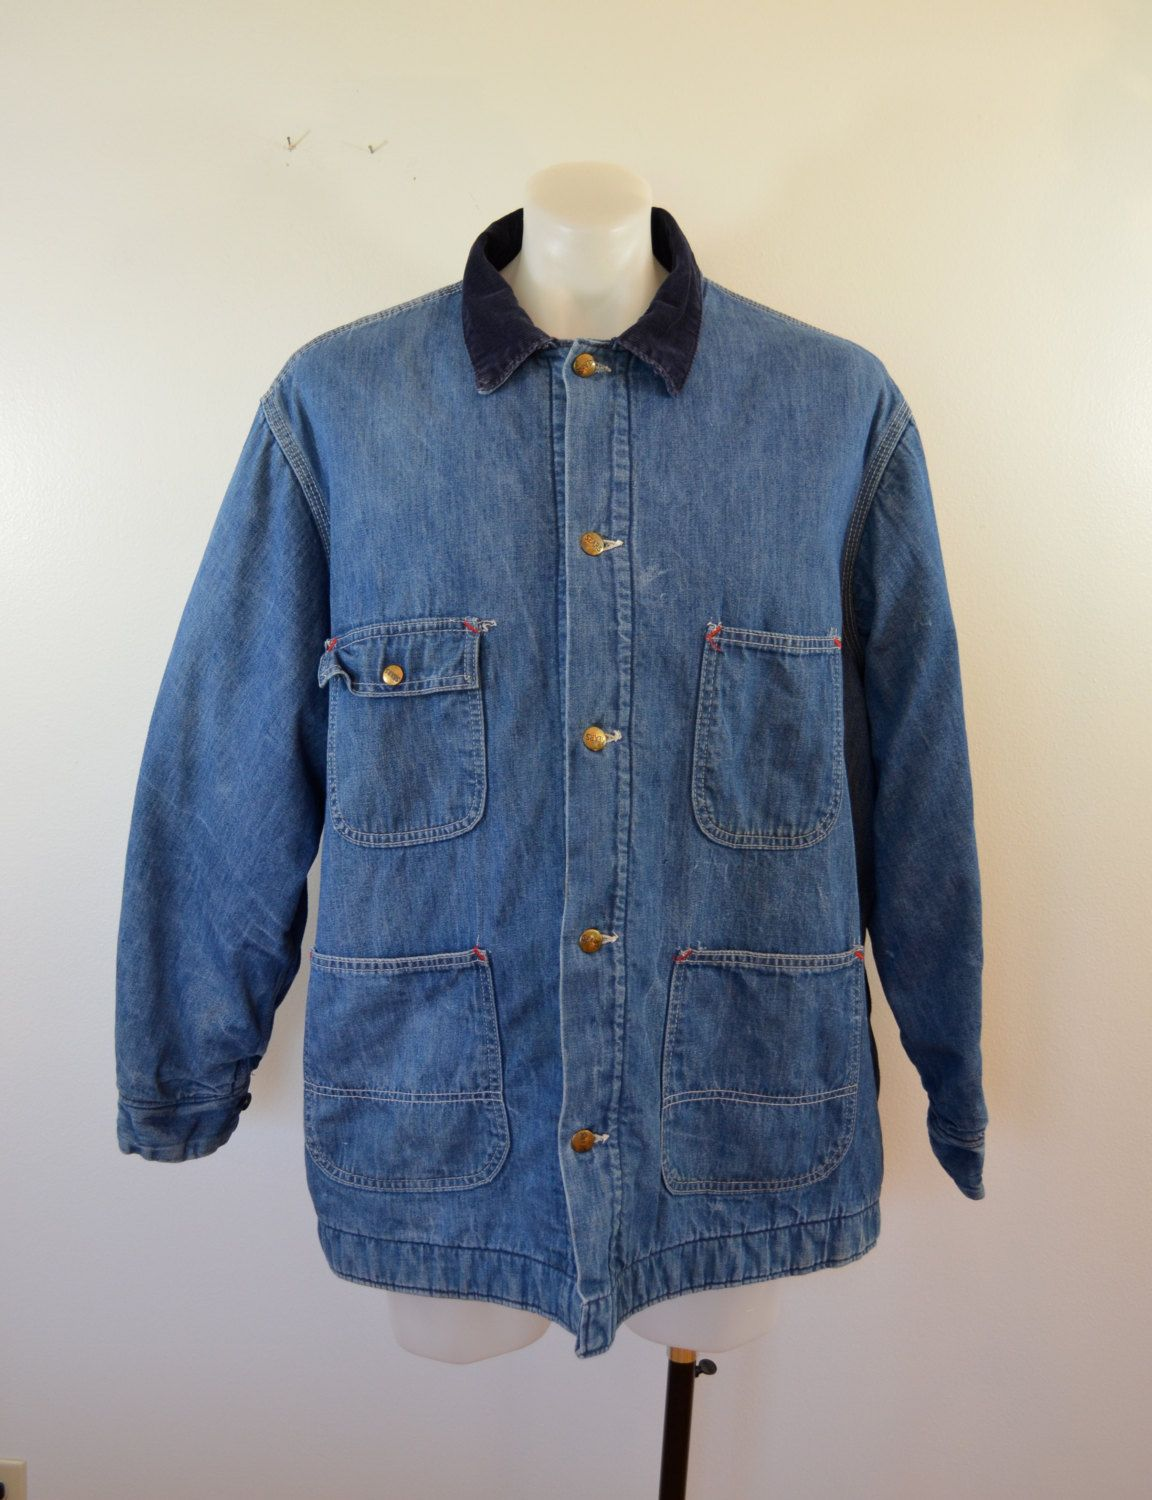 7b19eb402d0 Vintage SEARS Work N Leisure Denim chore jacket BLANKET lined made in usa  XXL by ilovevintagestuff on Etsy